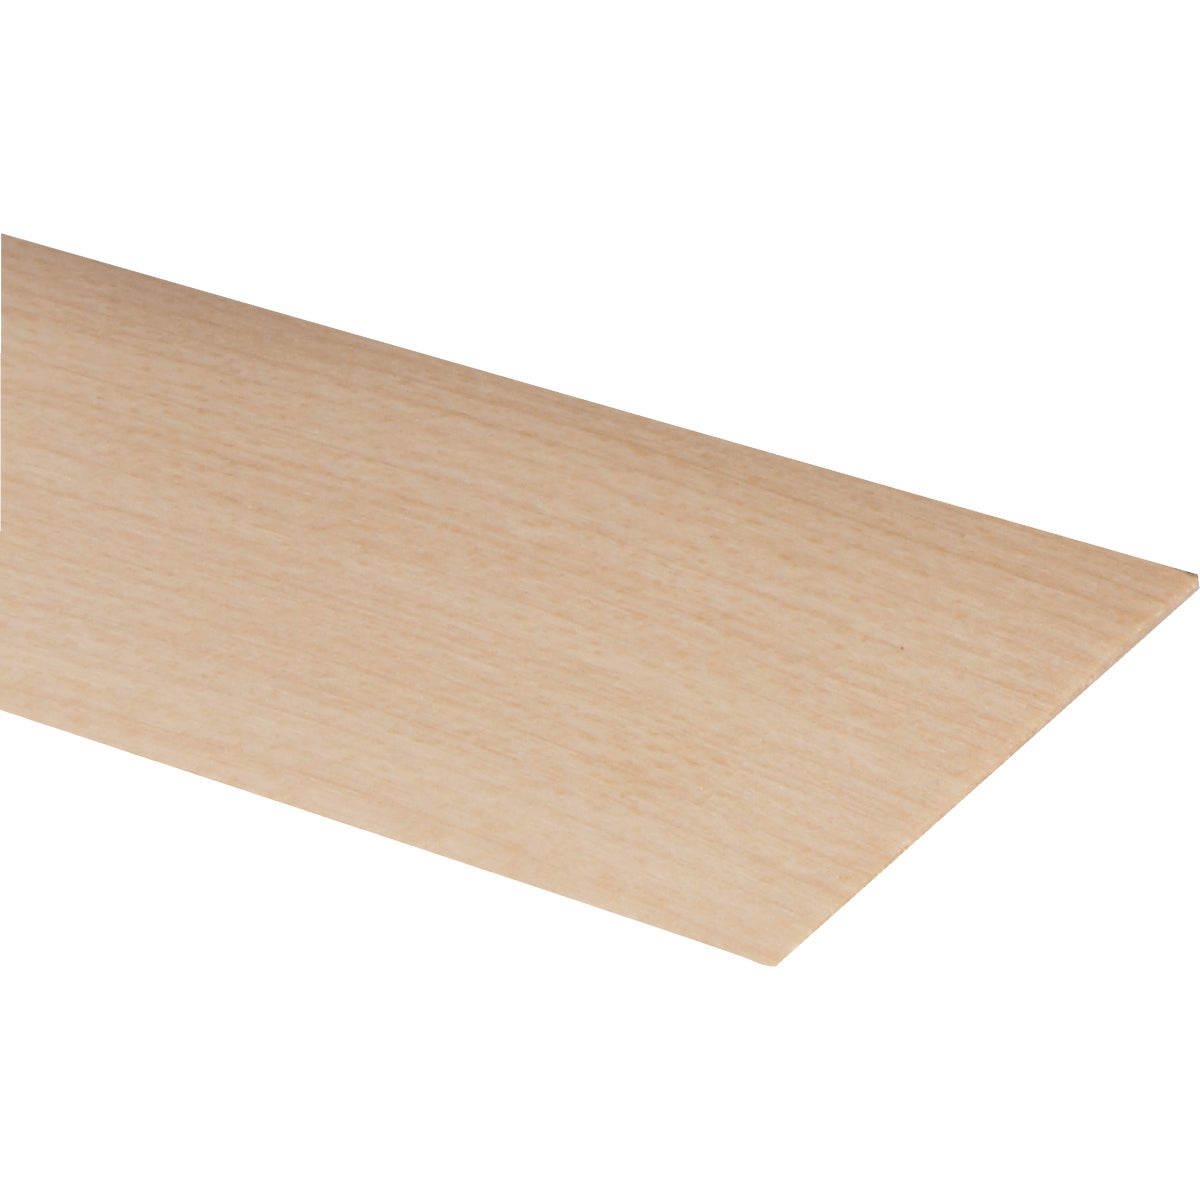 2X8 W BIRCH VENER EDGING - 28050 by Cloverdale Co Inc